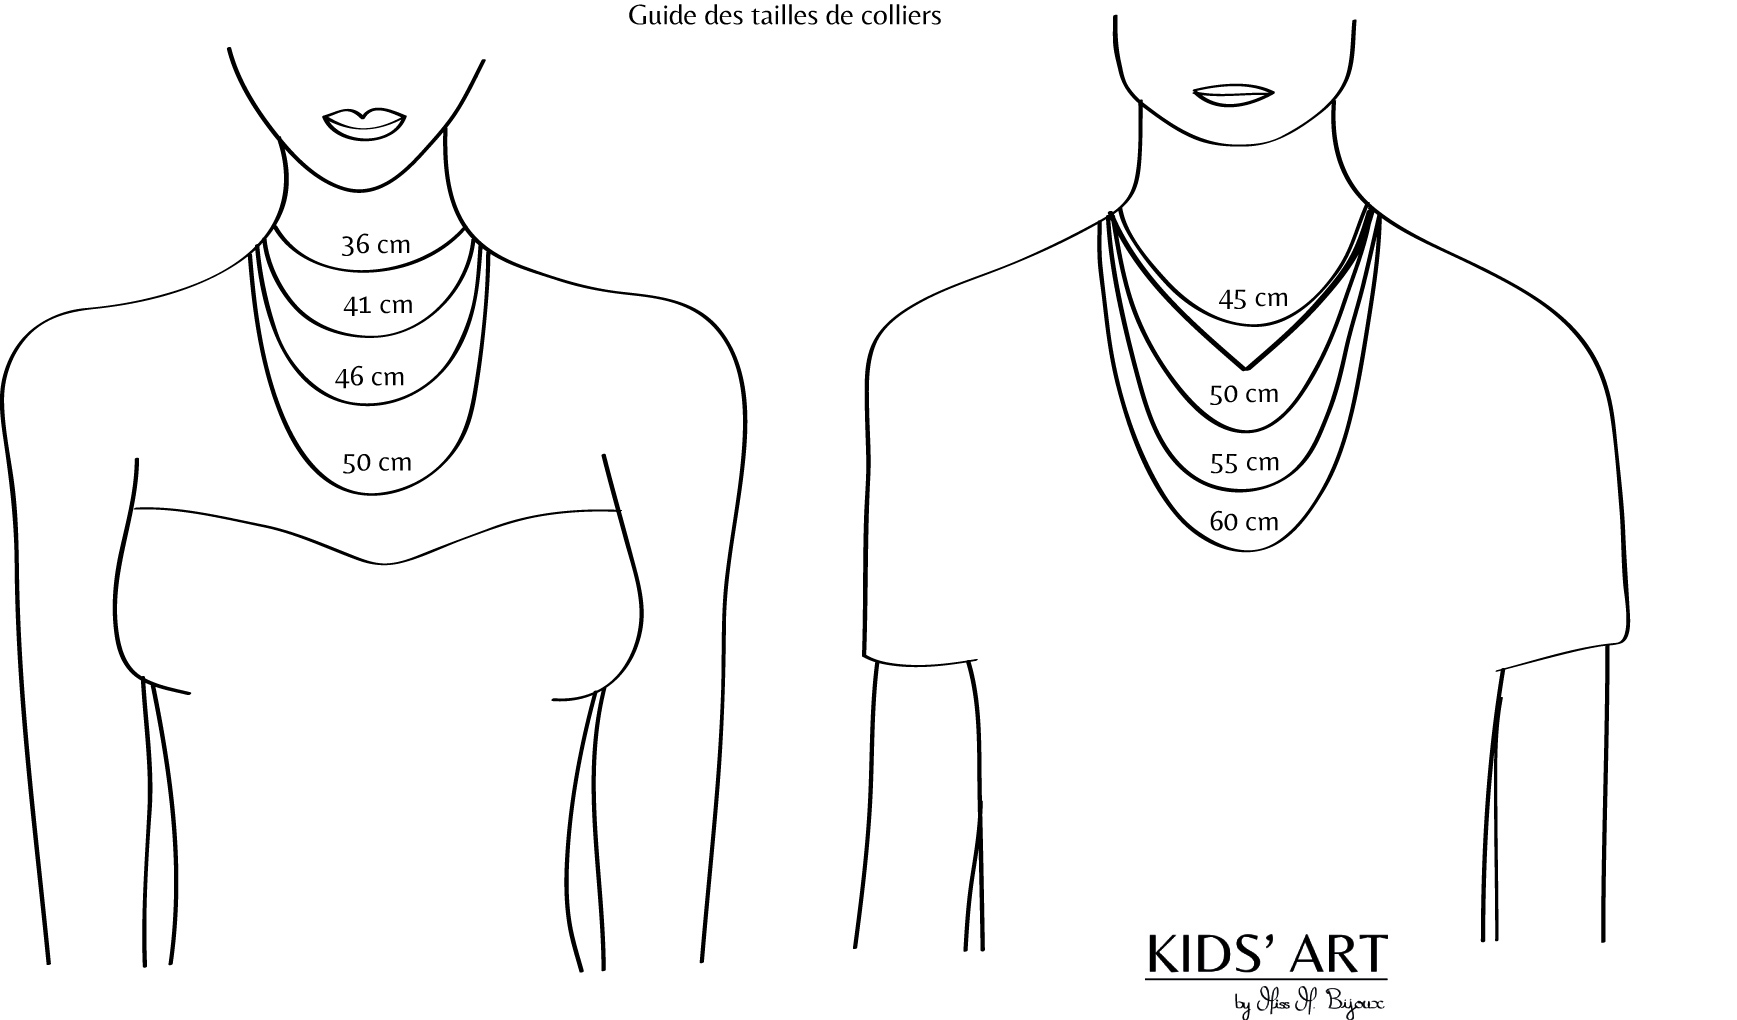 guide taille collier femme